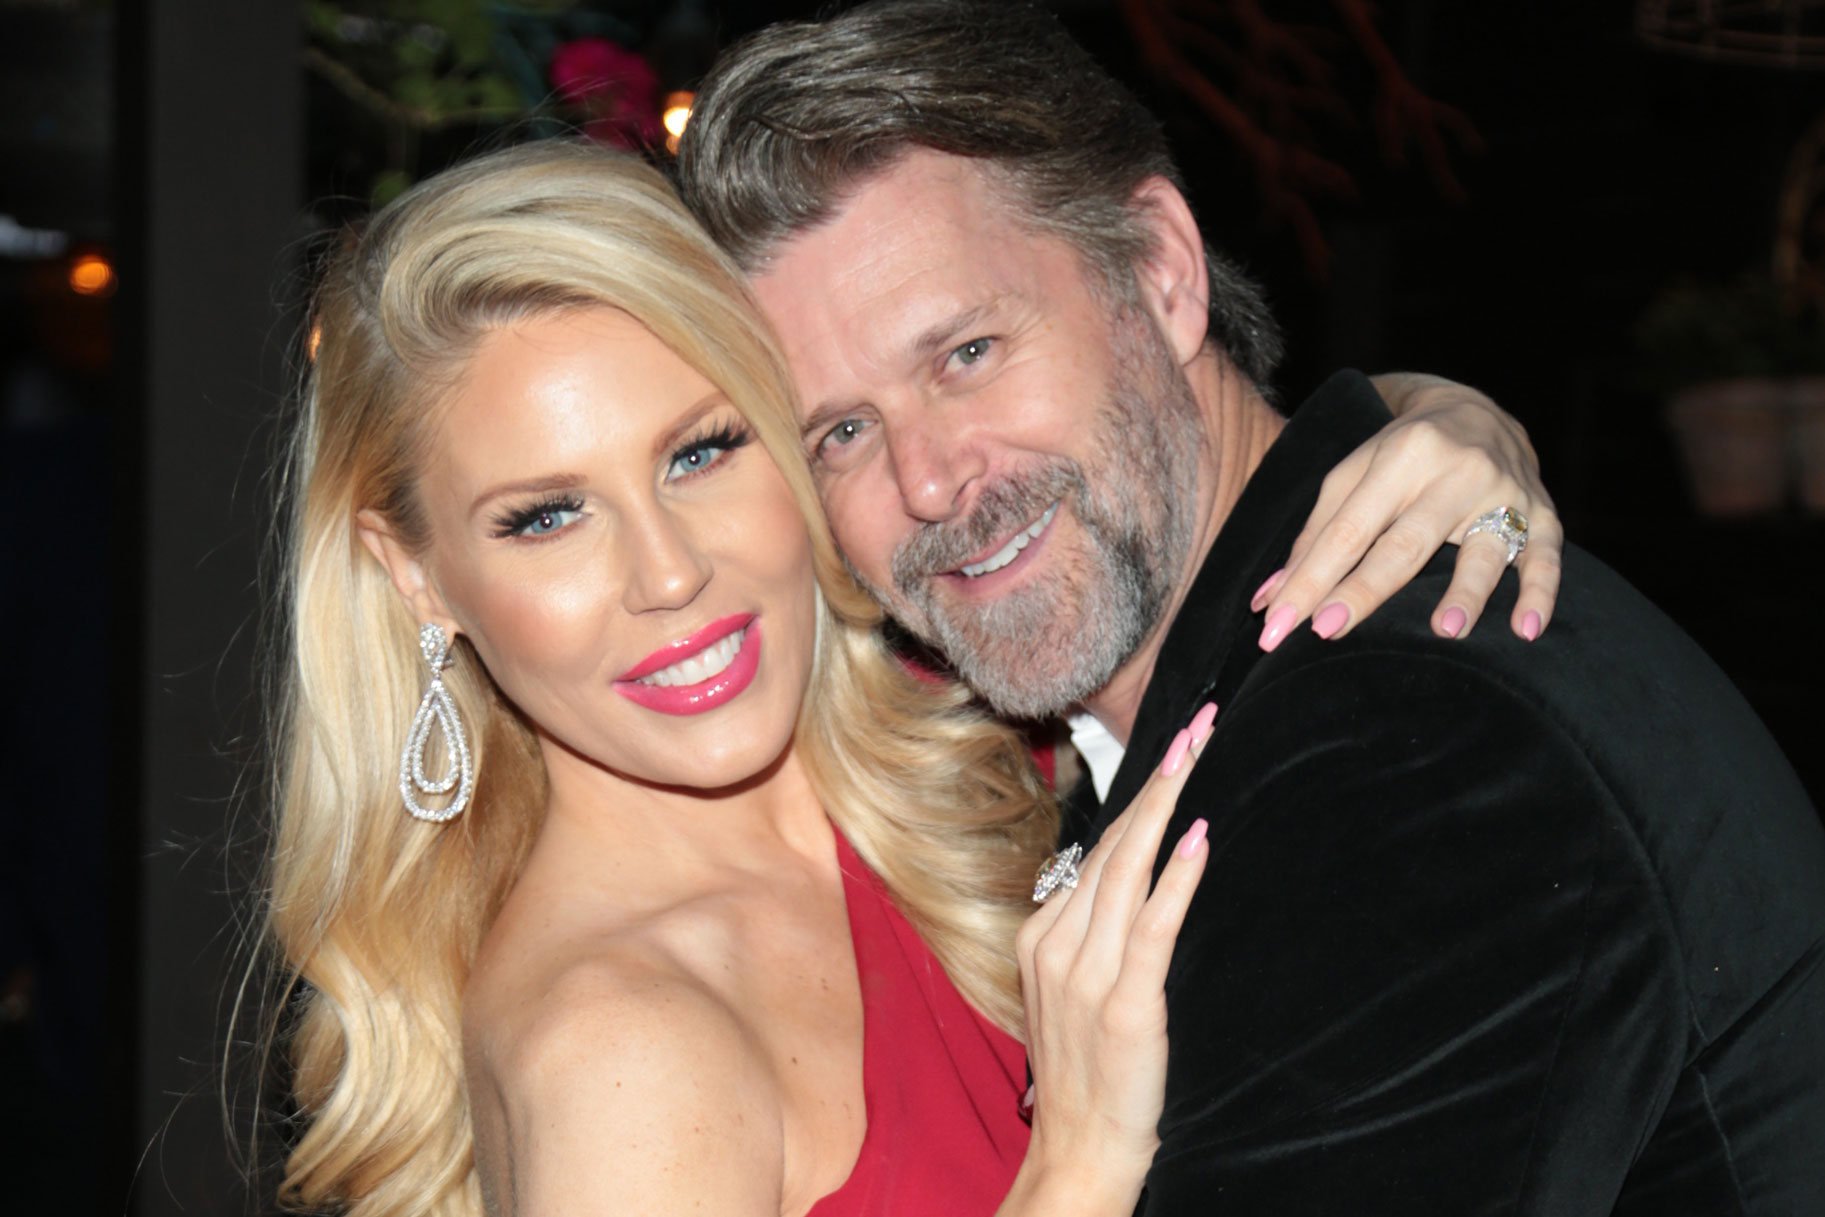 Gretchen Rossi, Slade Smiley